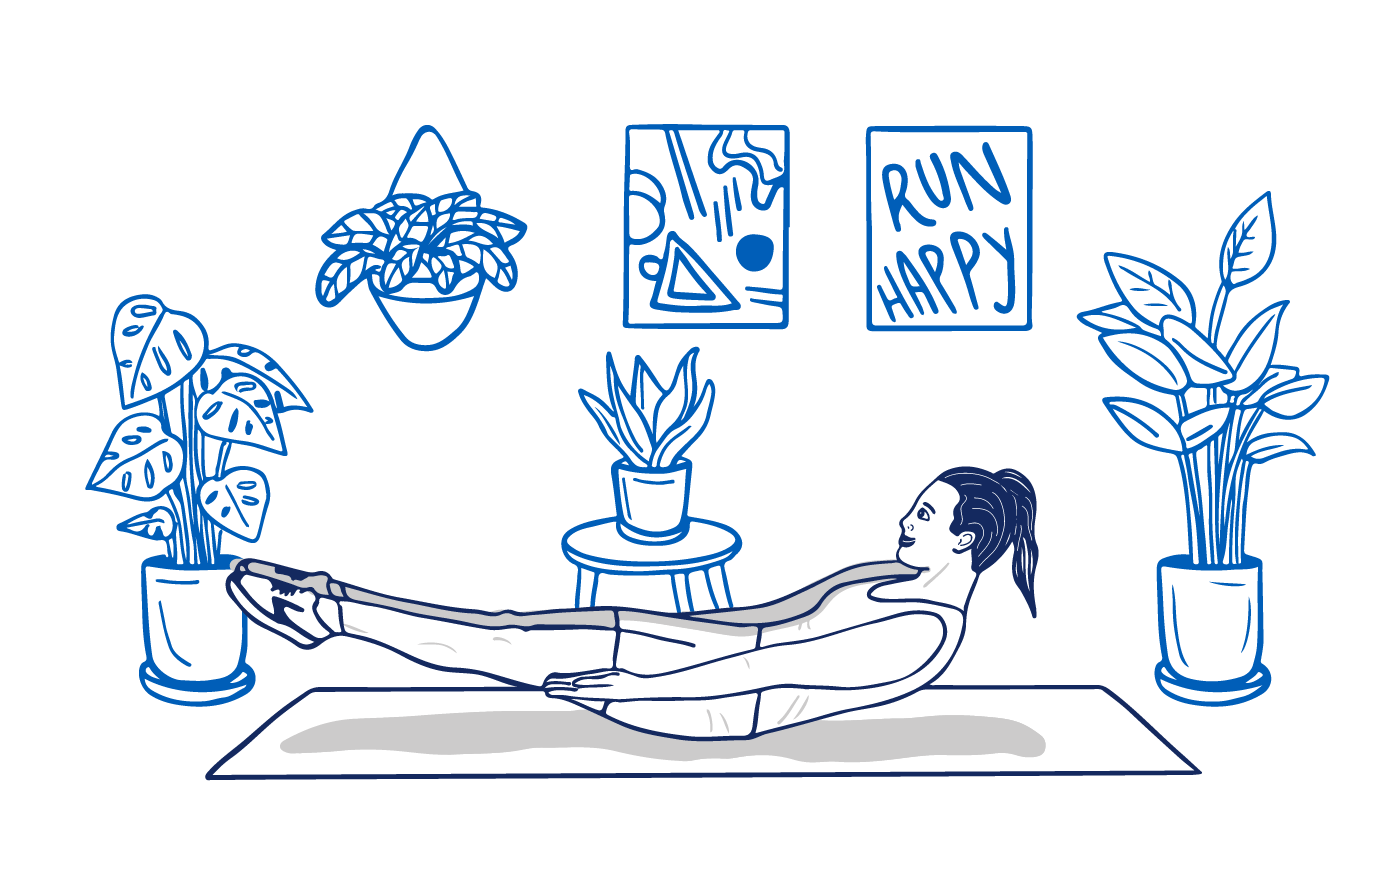 """An illustration of a woman doing V-ups on a yoga mat in her living room surrounded by houseplants, an abstract art painting, and a poster that says """"Run Happy."""